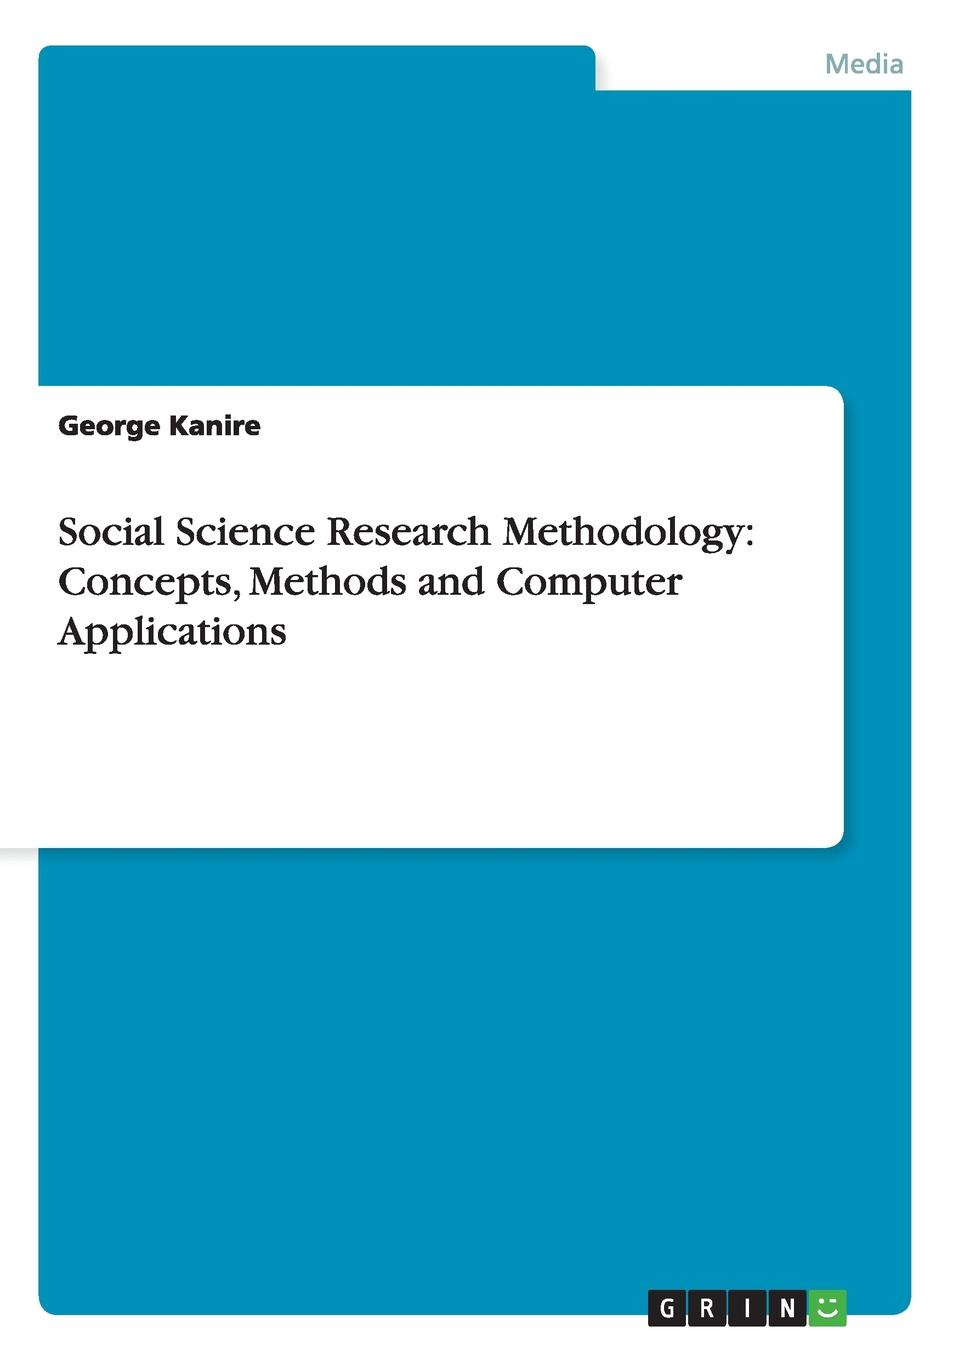 George Kanire Social Science Research Methodology. Concepts, Methods and Computer Applications coleman cindy the designer s guide to doing research applying knowledge to inform design